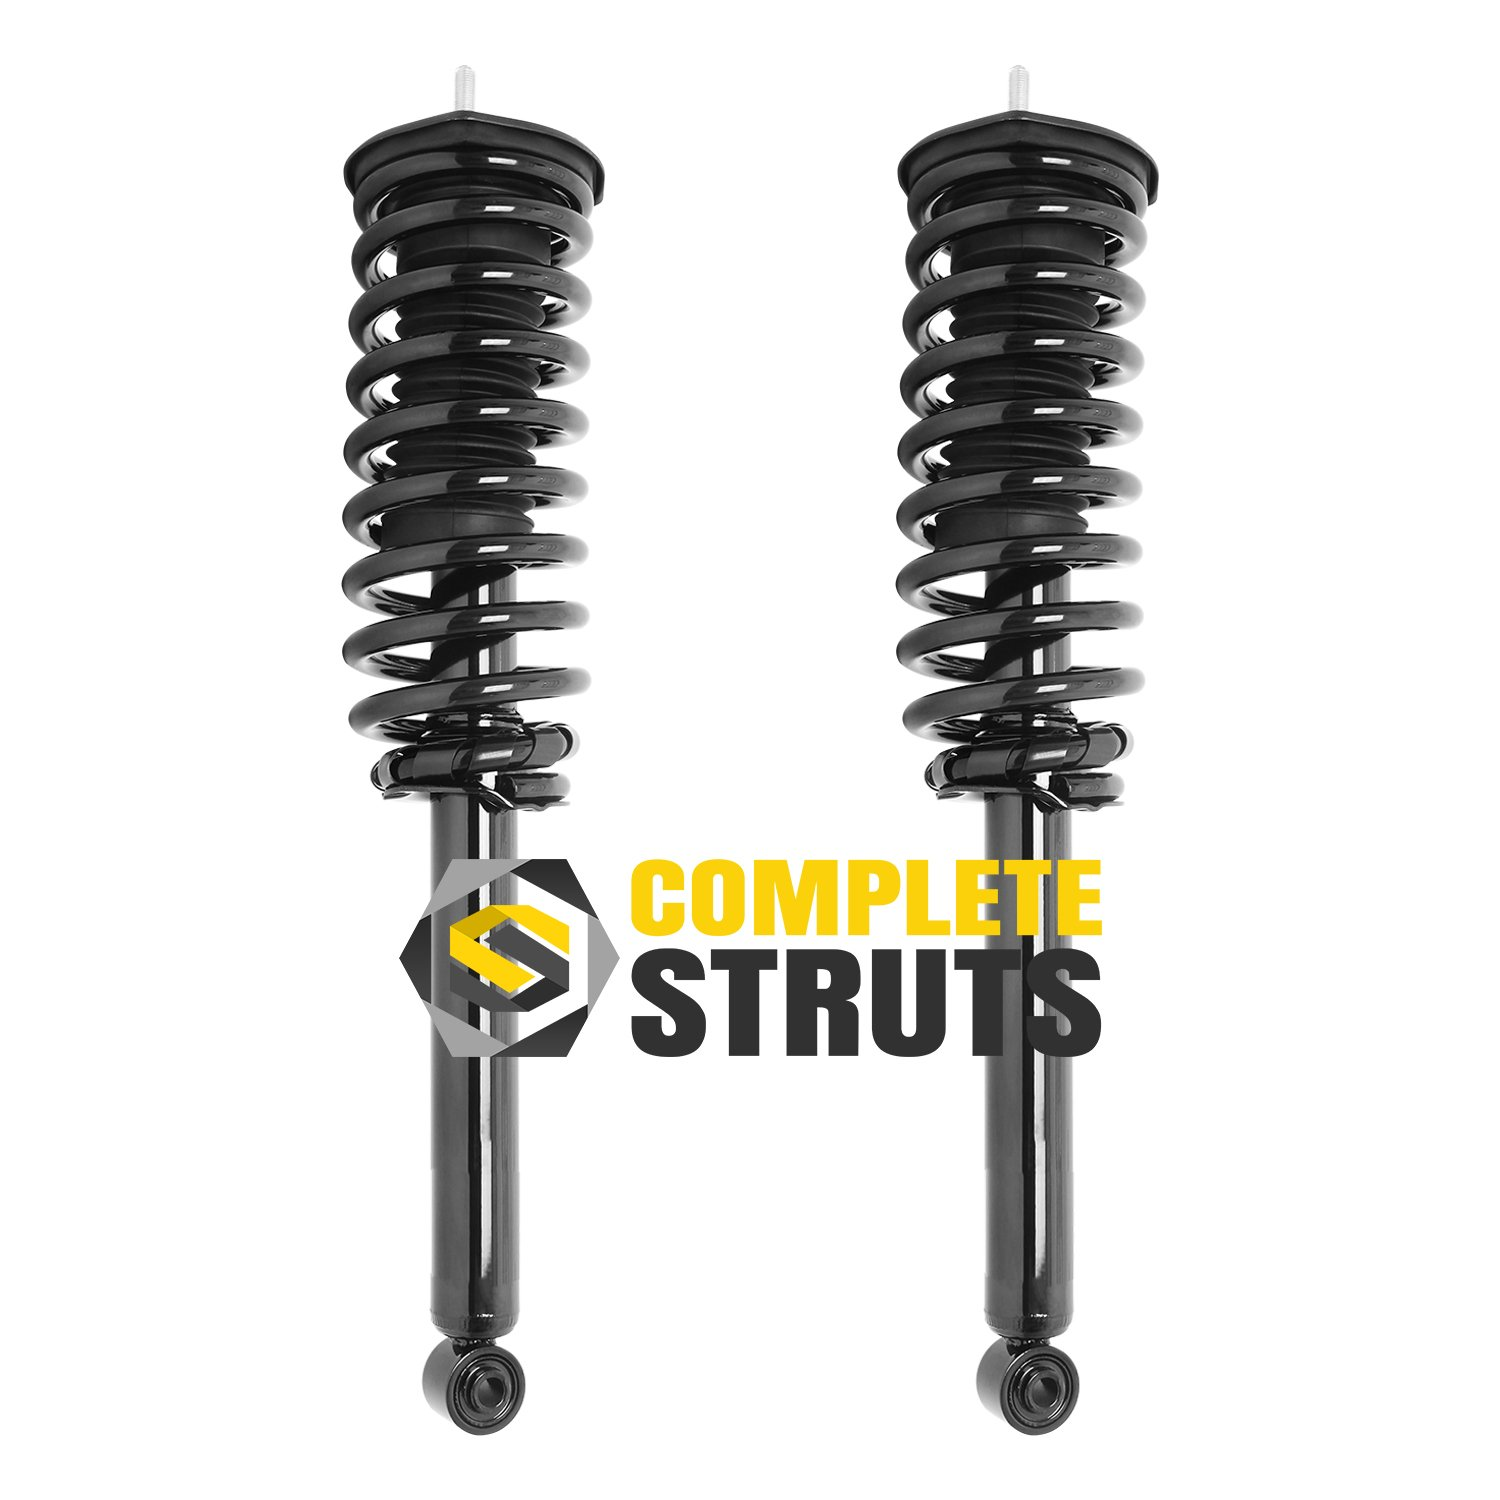 Set of 4 Front Quick Complete Struts /& Rear Bare Shock Absorebrs Compatible with 2013-2015 Ford Flex